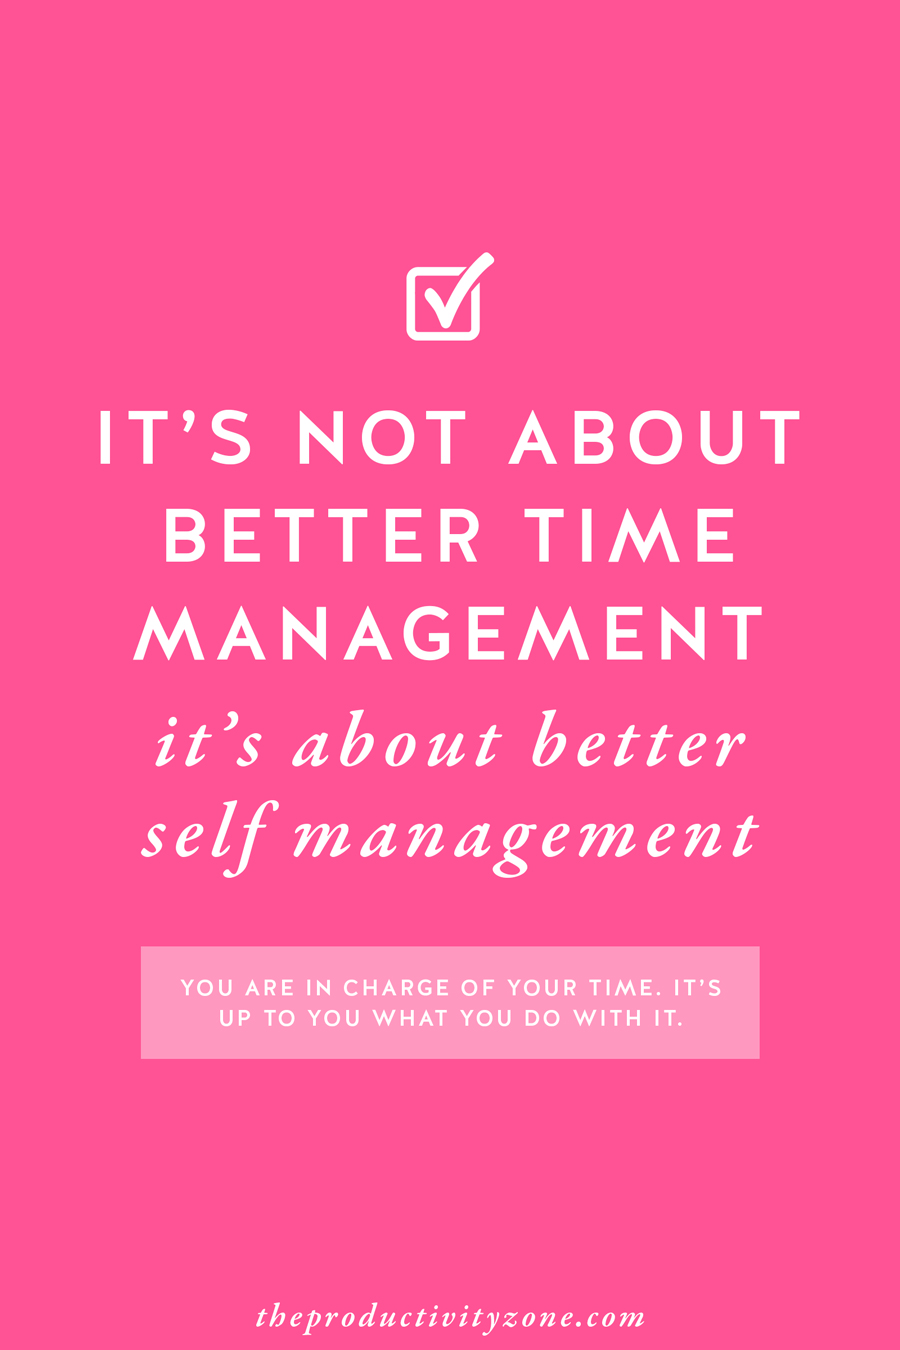 How do we focus and stay productive in the hours we're given each day? Hint: It's not just about better time management, it's about better self-management!! I'm sharing 5 proven tips to better both on The Productivity Zone!!